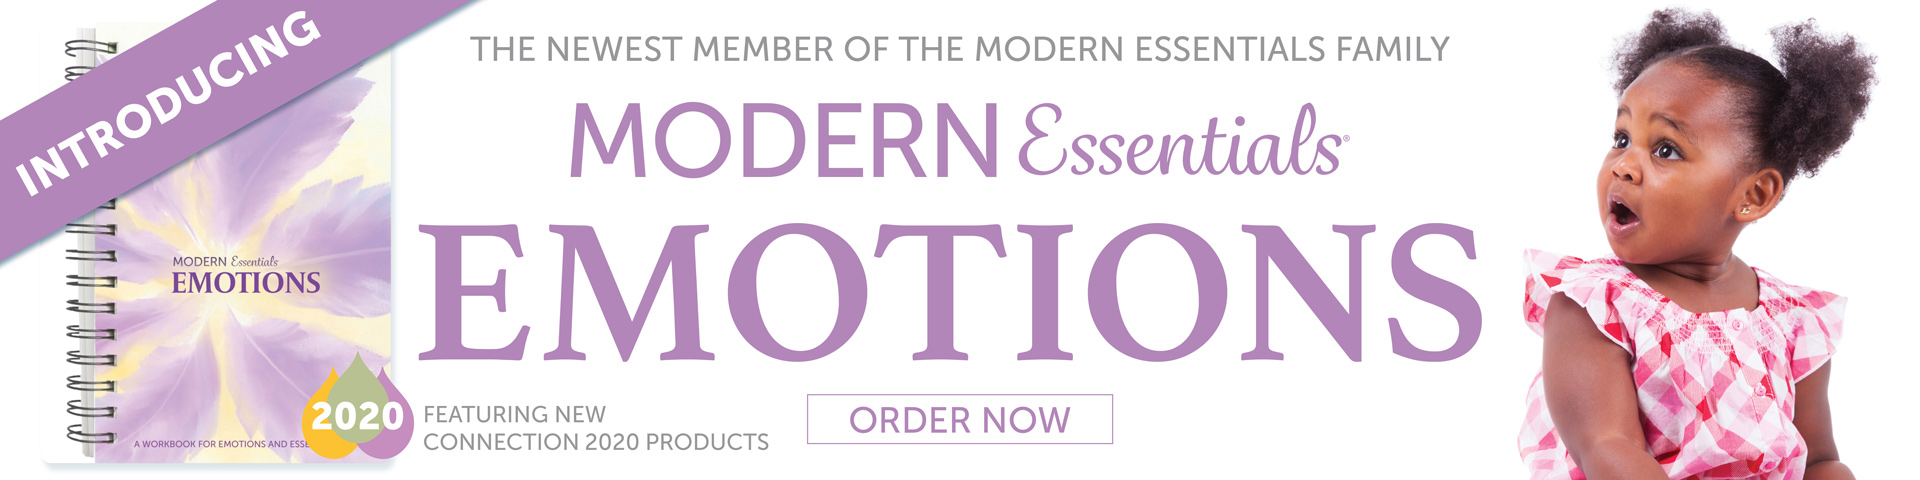 The Newest Member of the Modern Essentials Family!  Modern Essentials Emotions